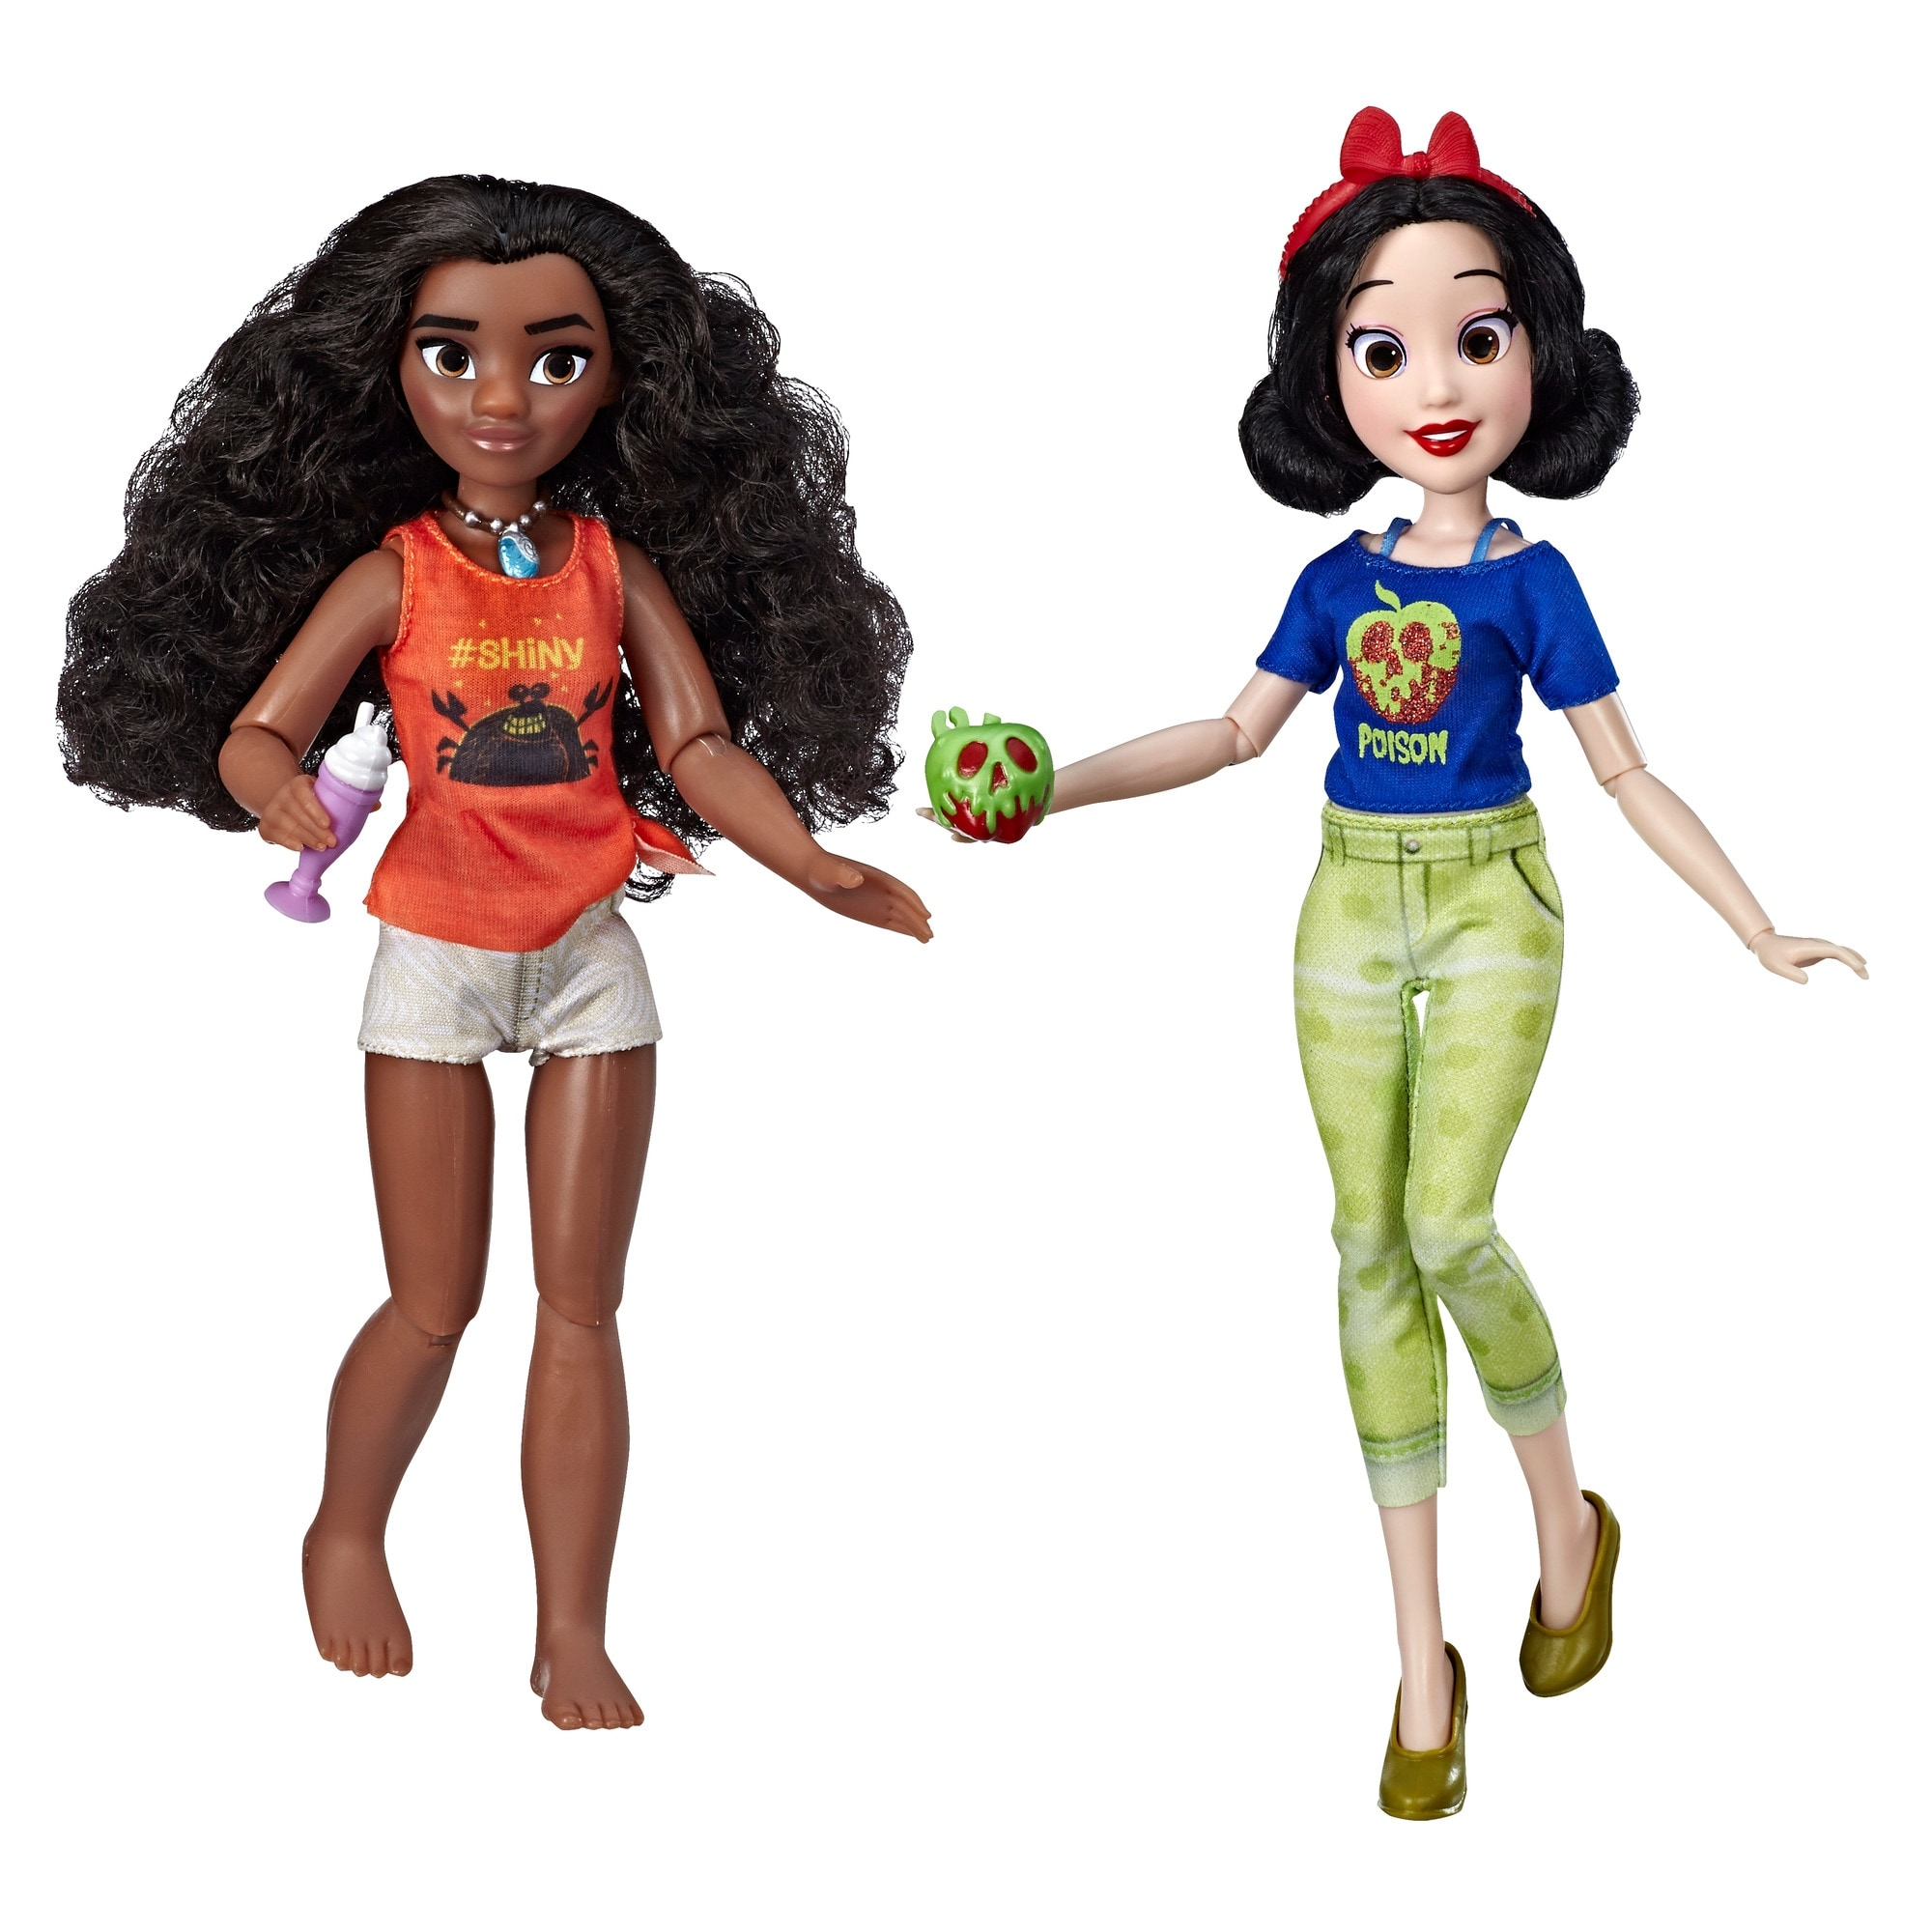 shop disney princess ralph breaks the internet movie dolls moana and snow white dolls overstock 30318600 disney princess ralph breaks the internet movie dolls moana and snow white dolls